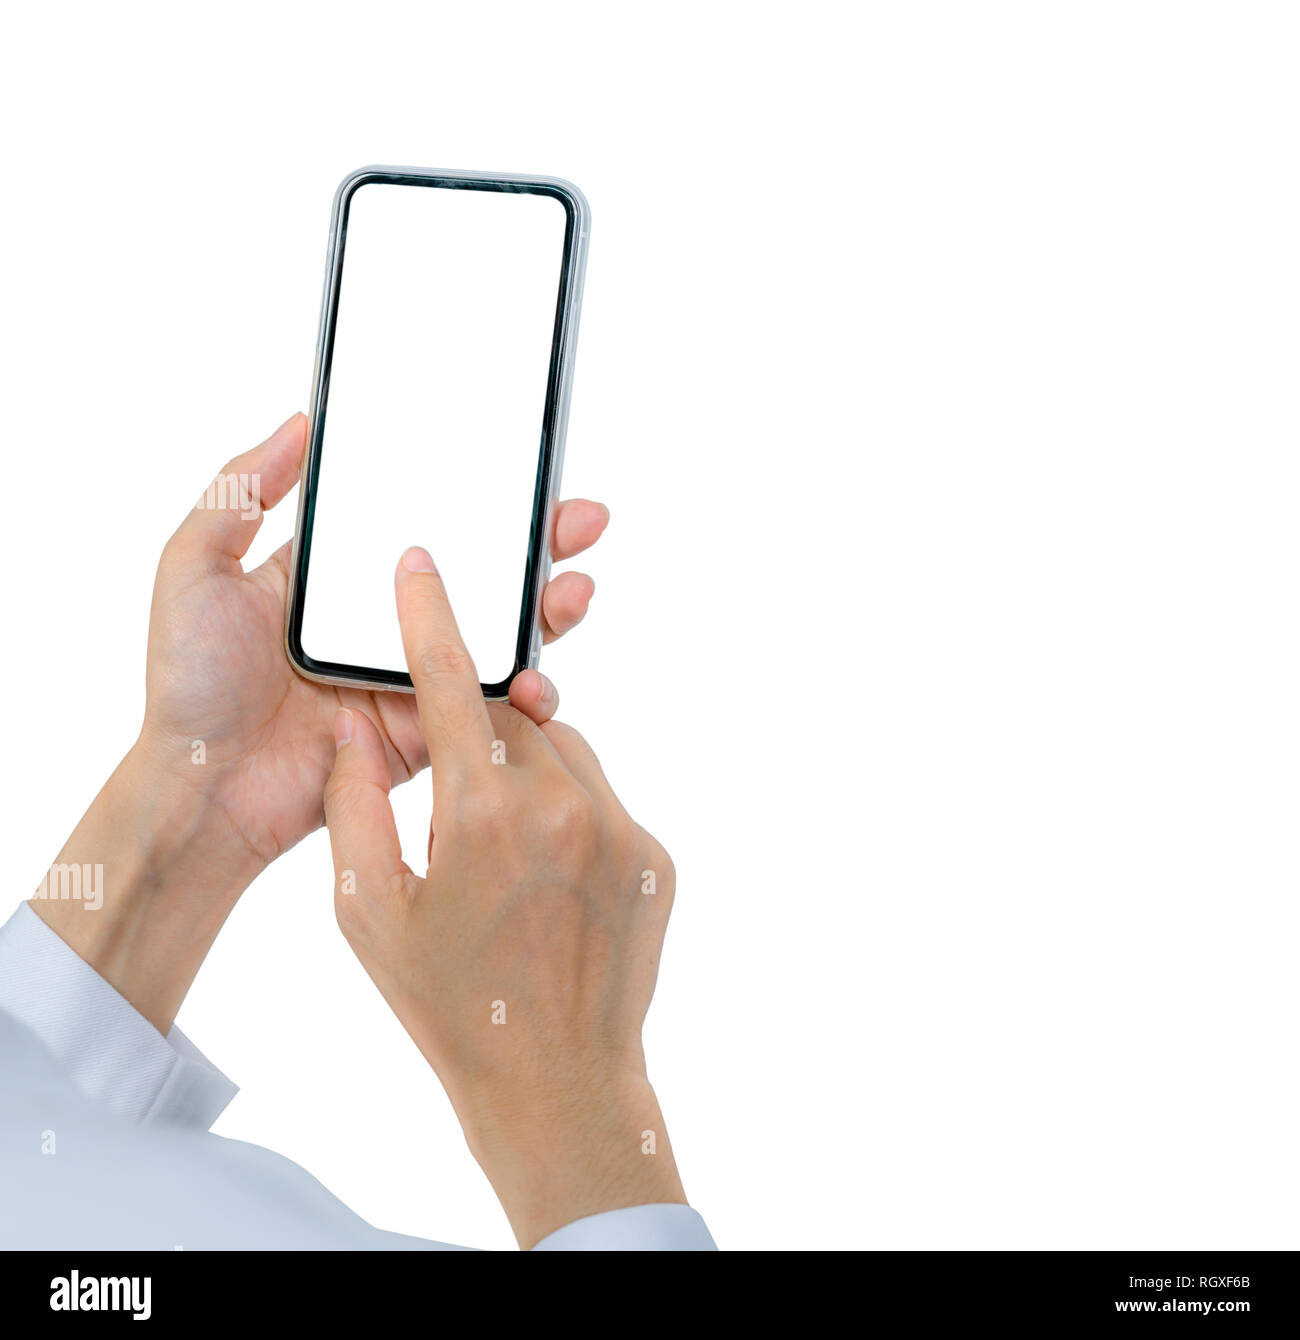 Woman's hand holding and using smartphone. Closeup hand touching smartphone with blank screen isolated on white background and copy space for text. - Stock Image